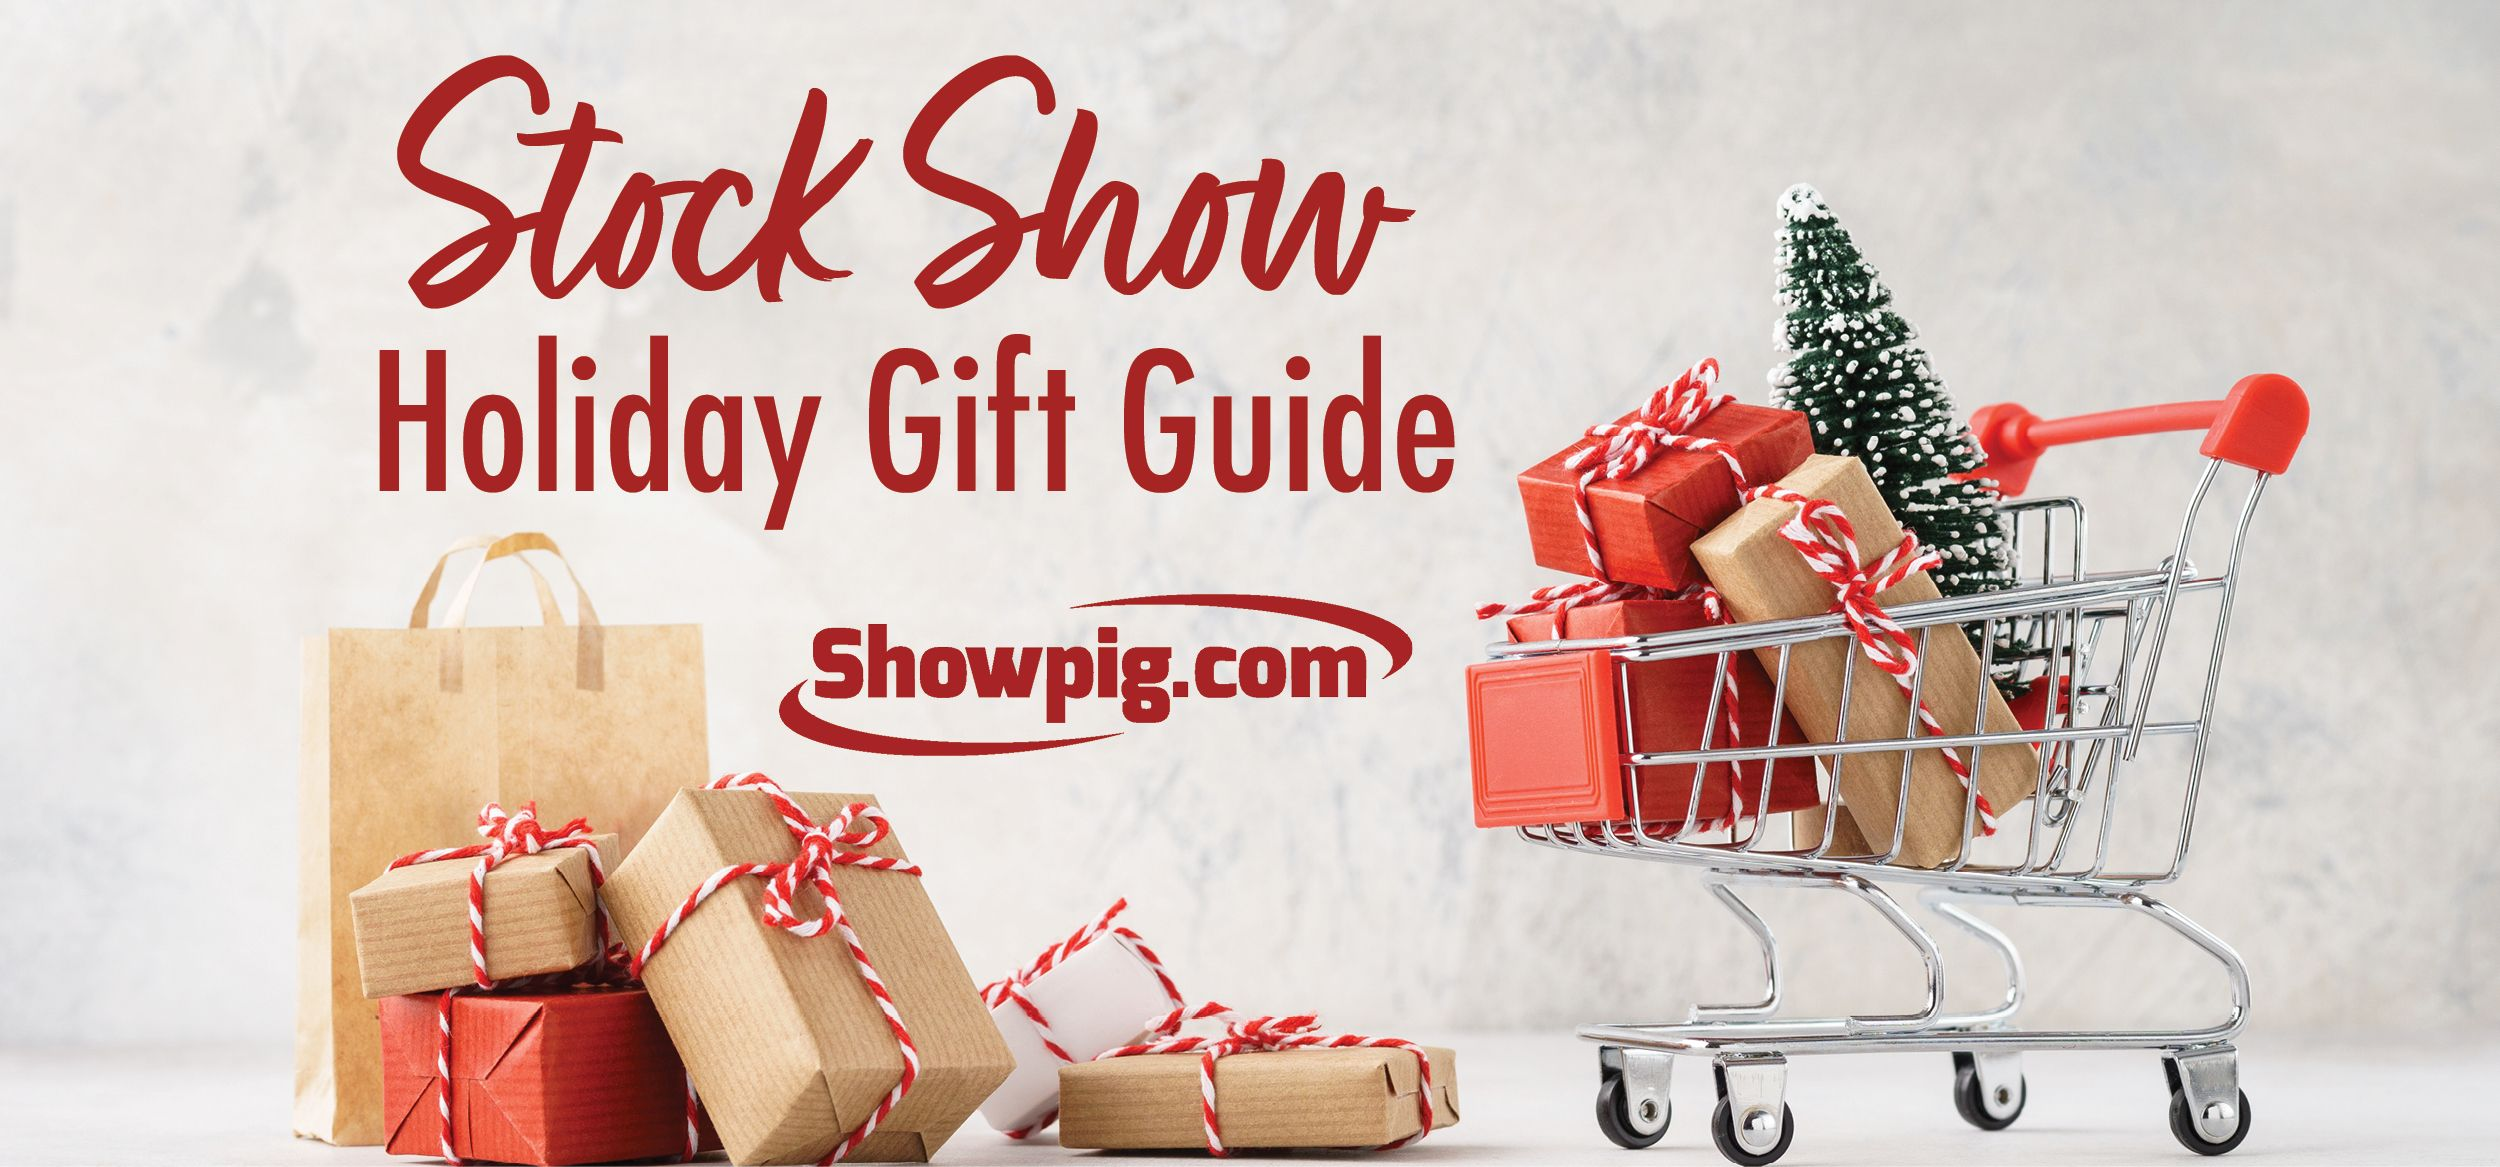 Featured image for the article titled Stock Show Holiday Gift Guide